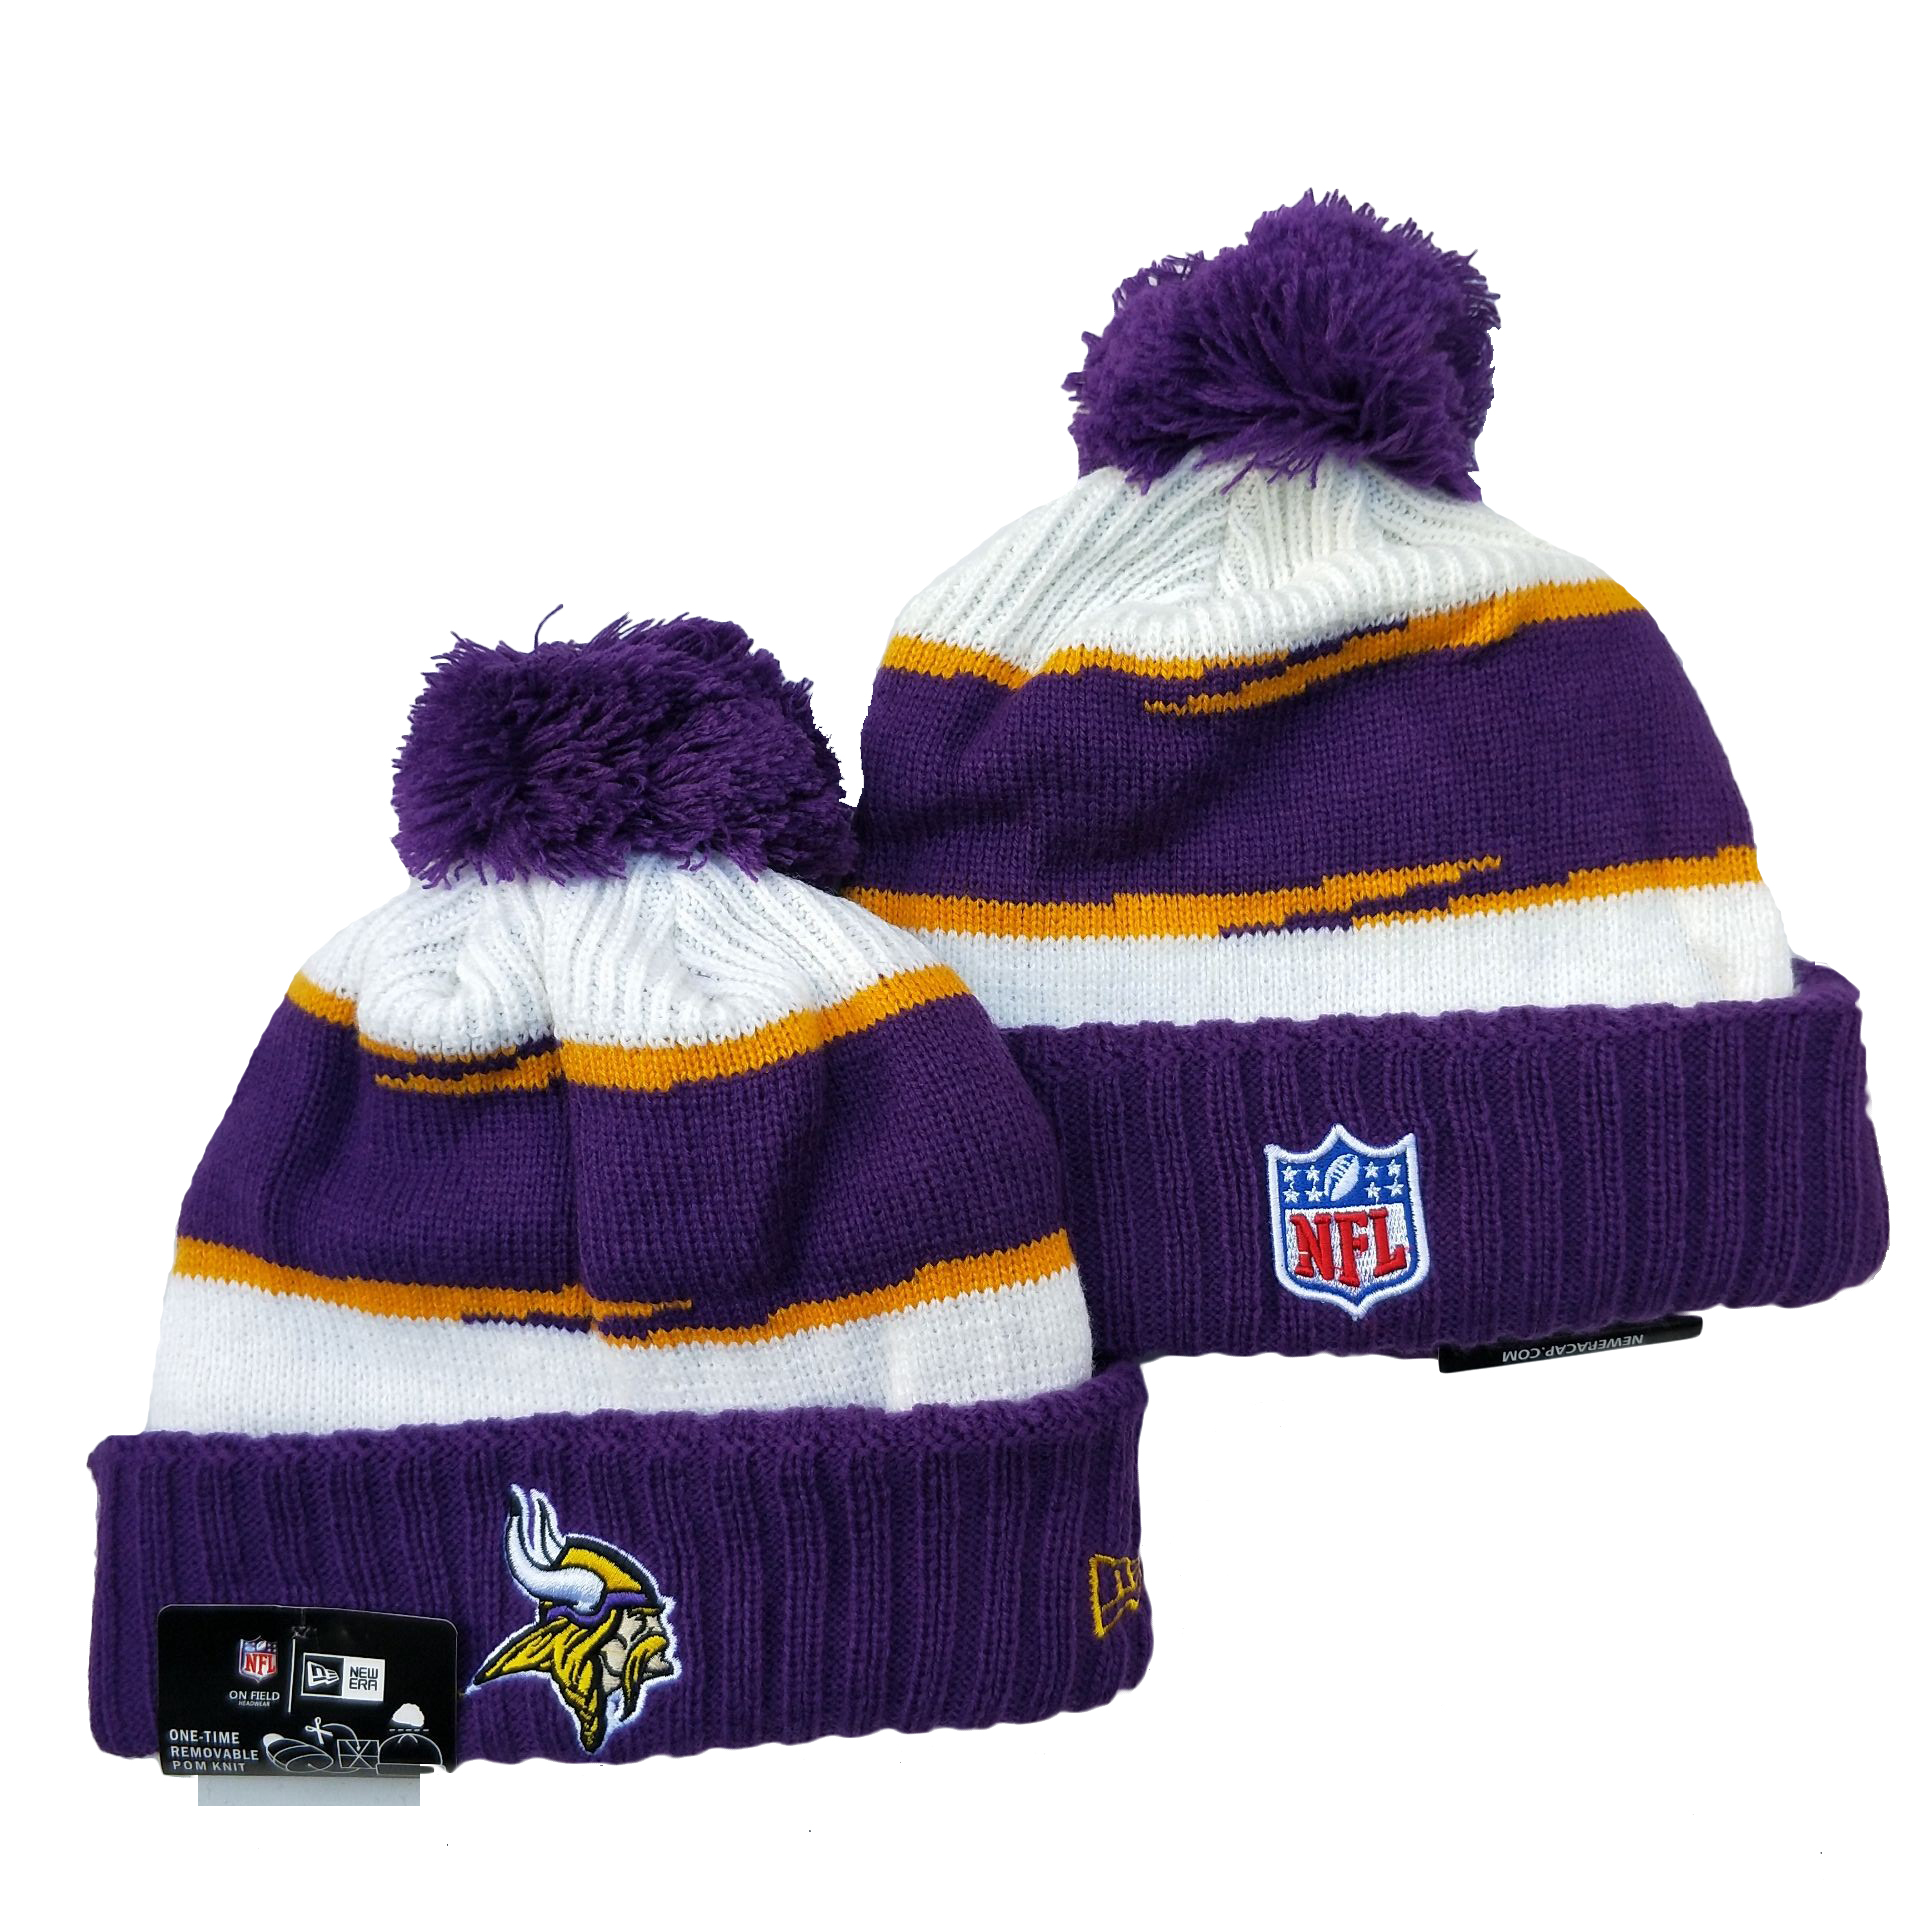 Minnesota Vikings Knit Hats 046